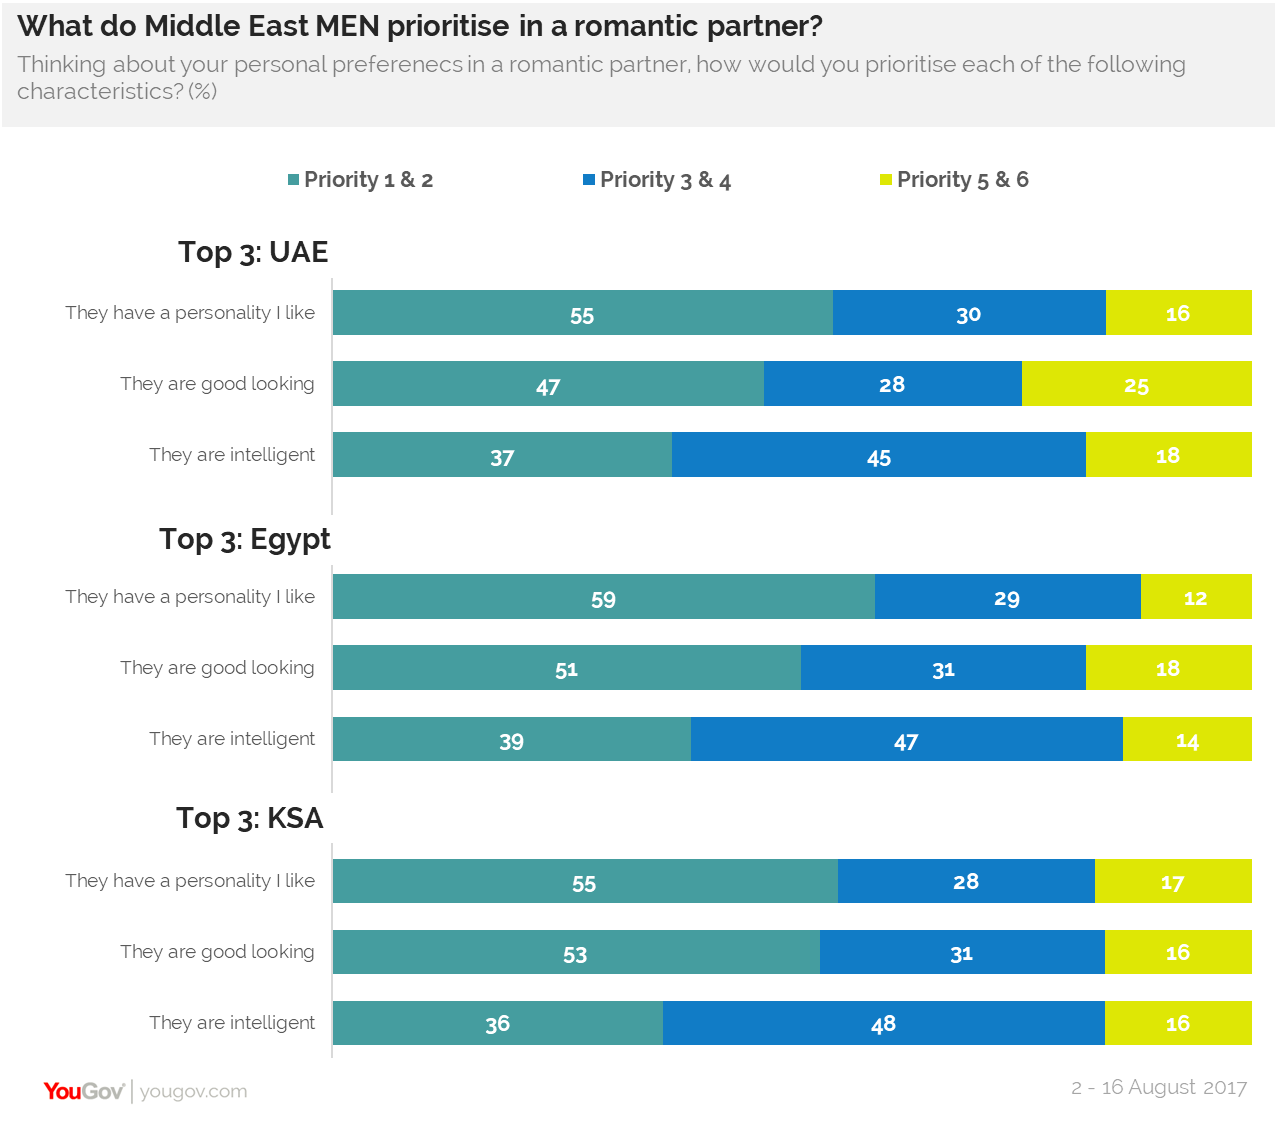 What do Middle East men prioritize in a romantic partner?